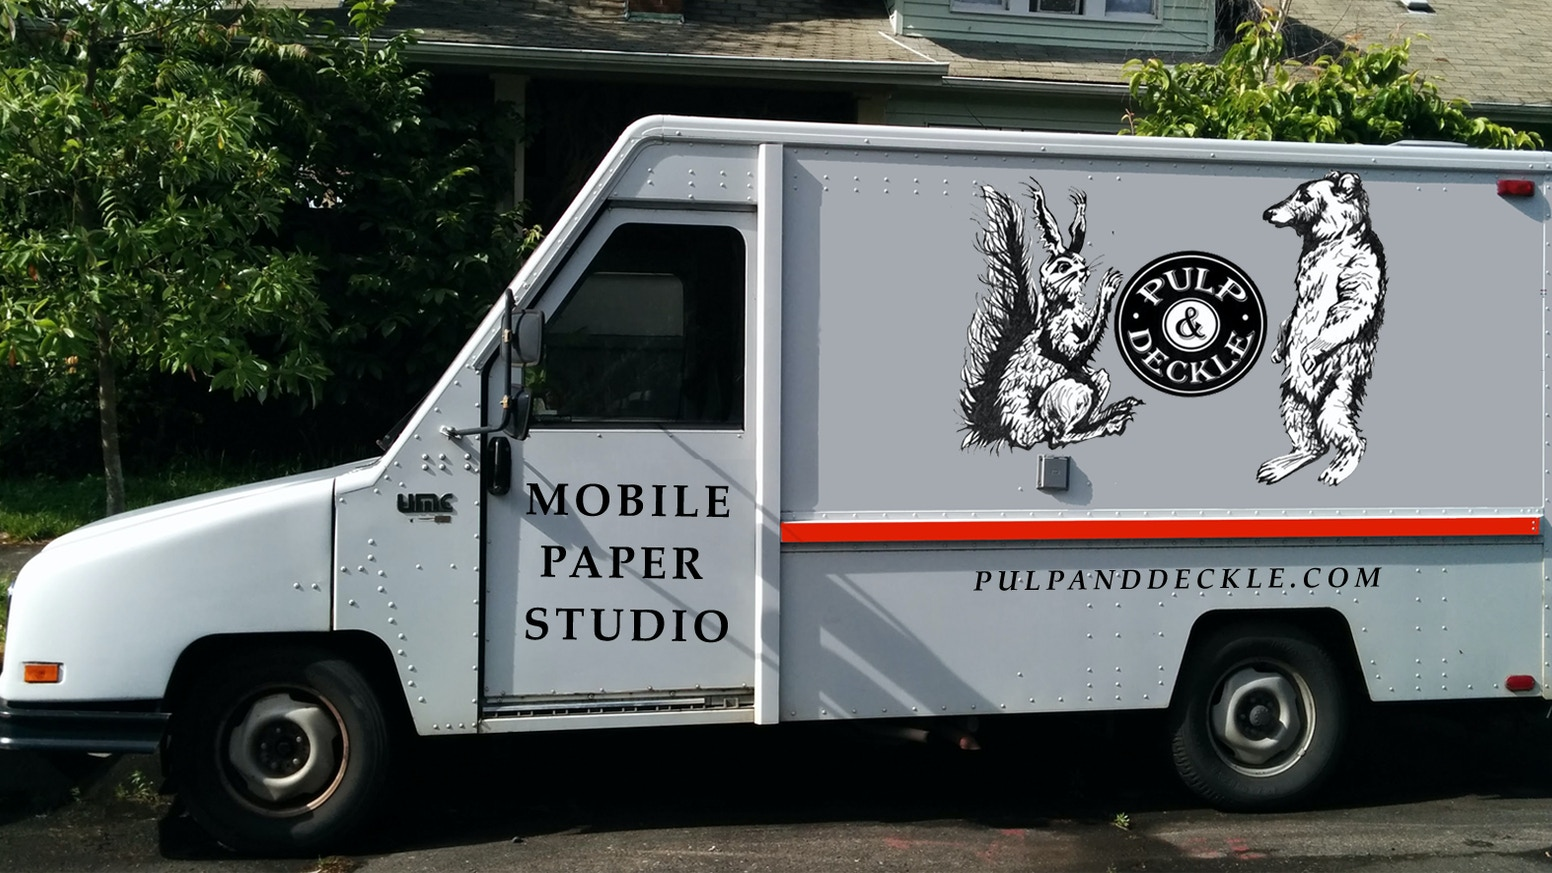 Keep the art of papermaking alive! We are turning a food truck into a mobile studio to teach & sell our wares all around Portland.